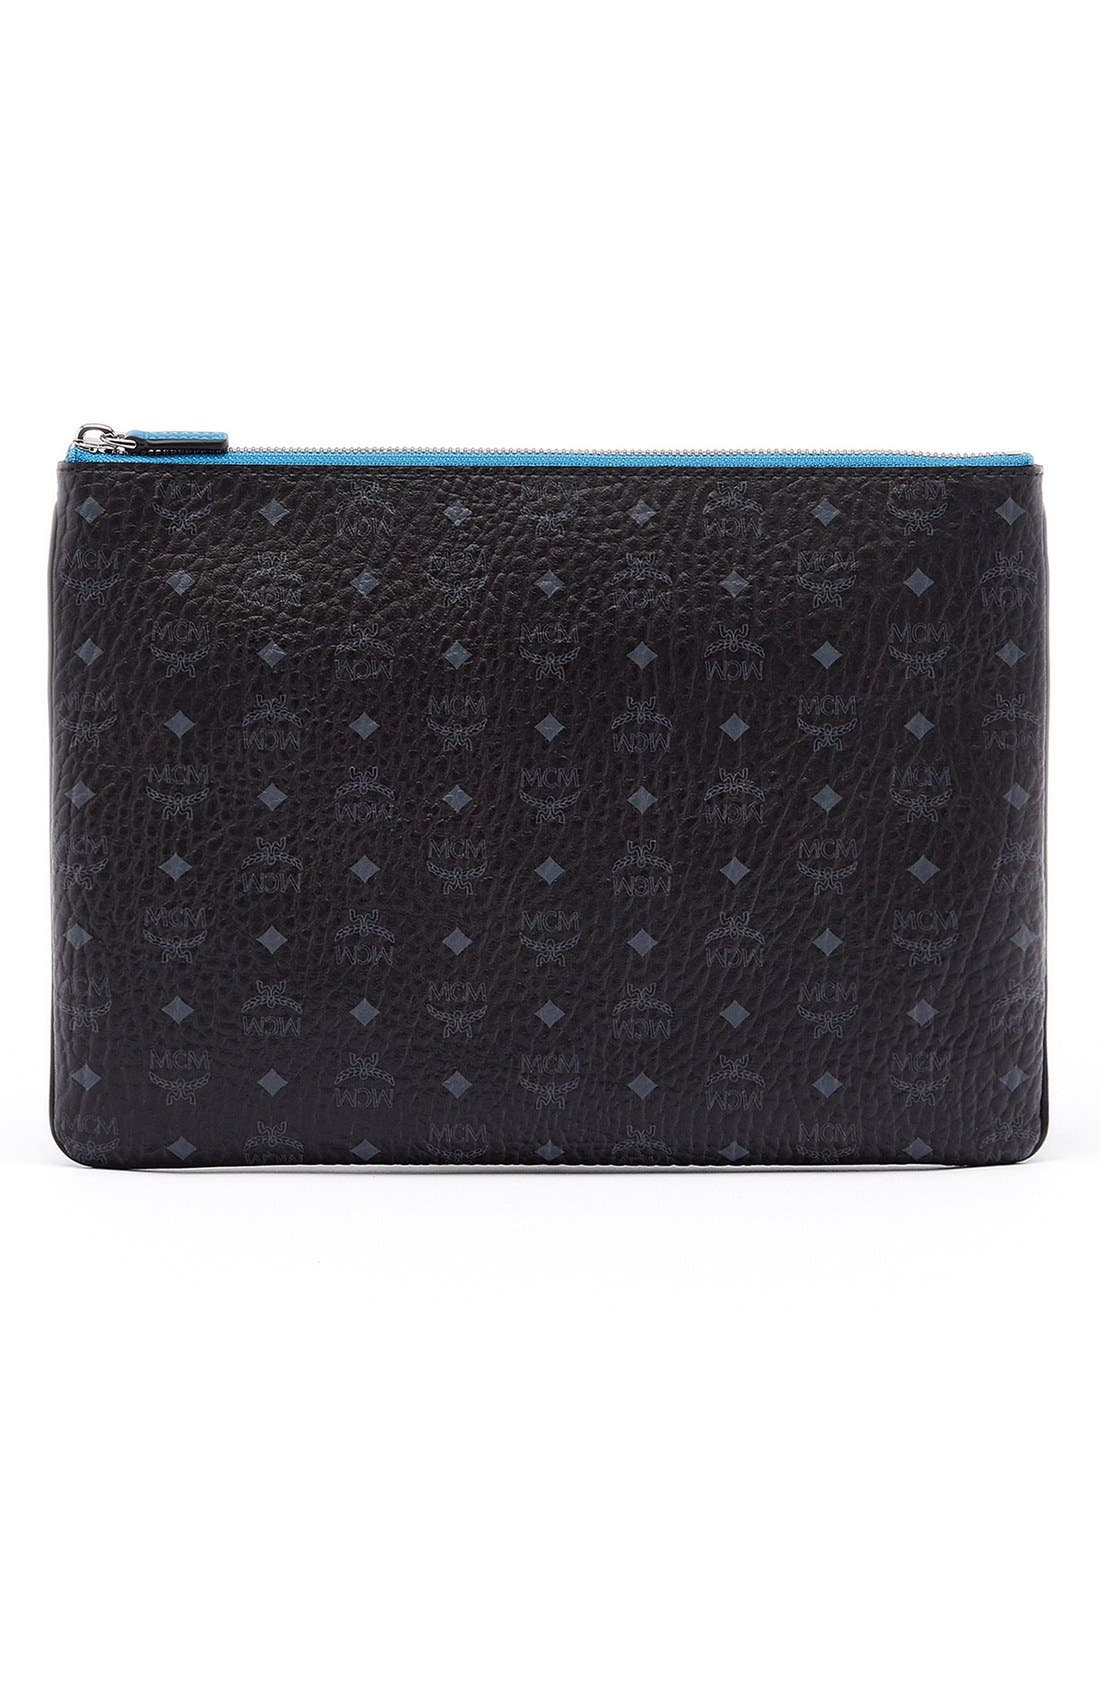 Alternate Image 1 Selected - MCM 'Heritage' Convertible Coated Canvas Zip Pouch